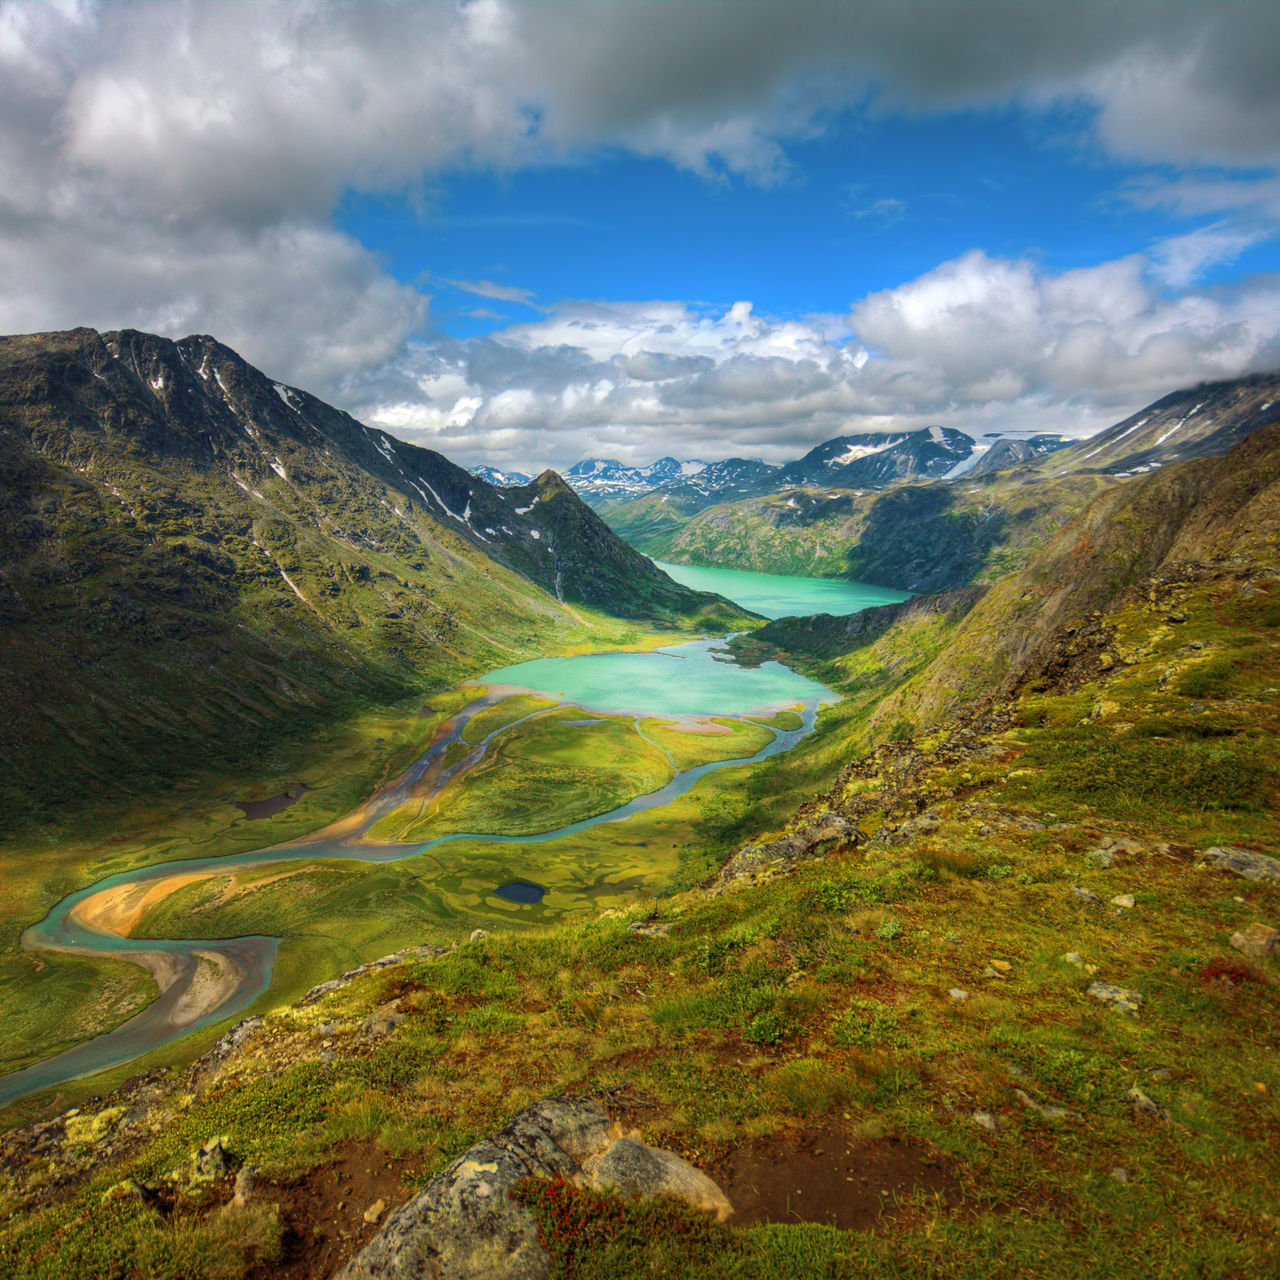 High Angle View Of River Amidst Mountains Against Cloudy Sky